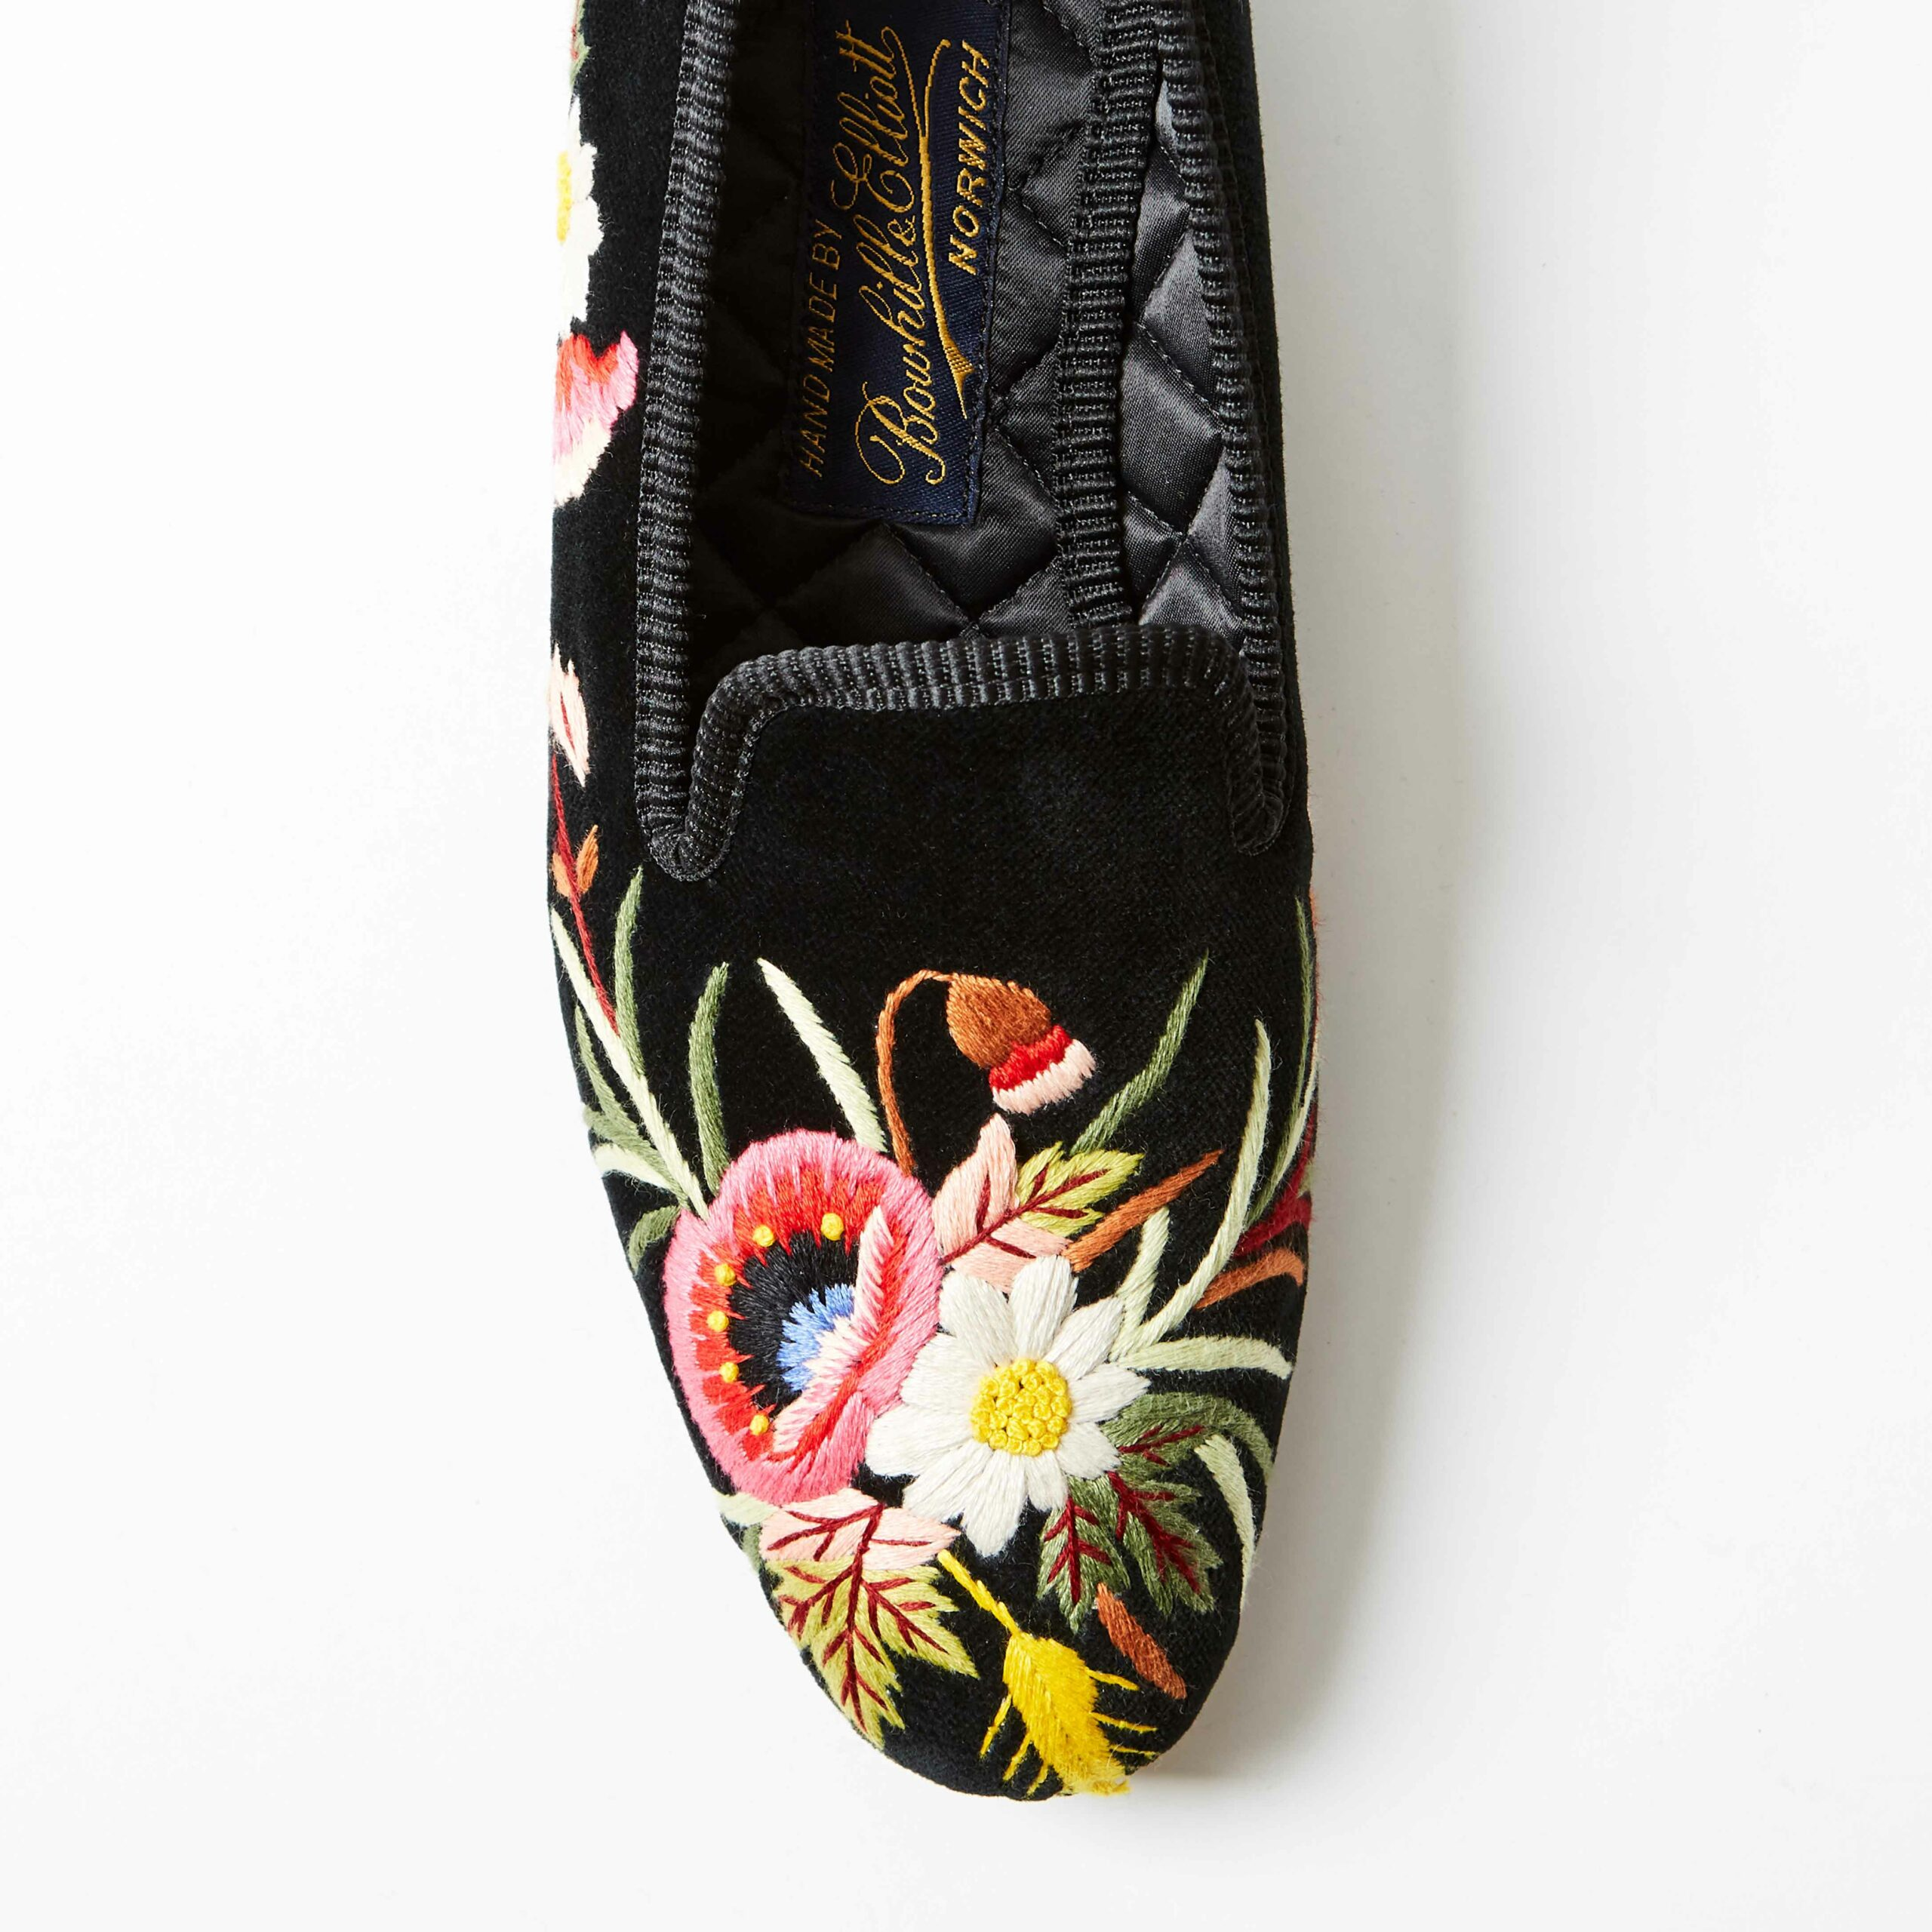 Bowhill and Elliott Black Velvet Albert Slippers with Poppies 3